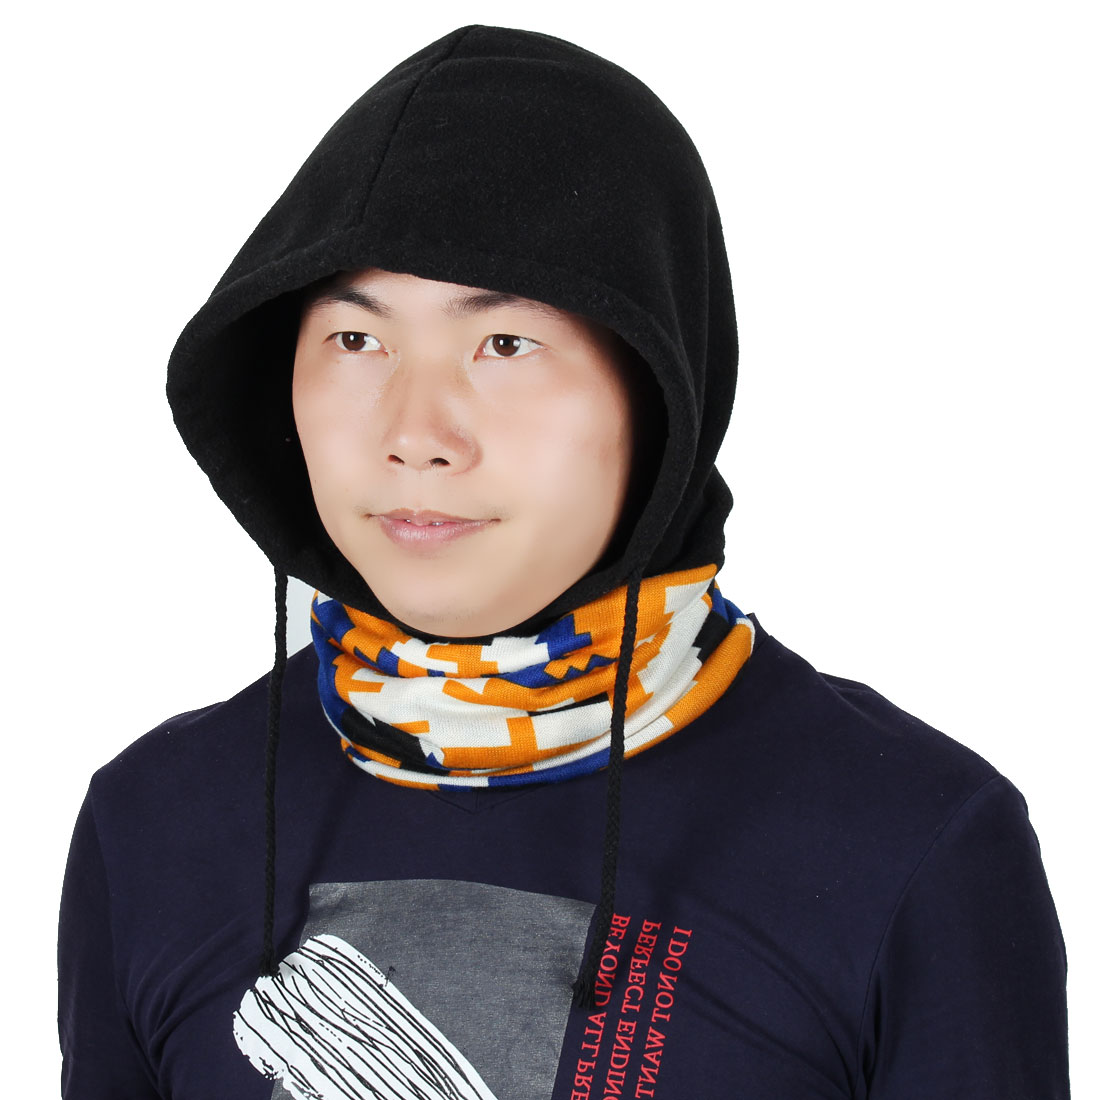 Fleece Adjustable Rope Motorcycling Head Wrap Neck Warmer Protector Balaclava by Unique-Bargains